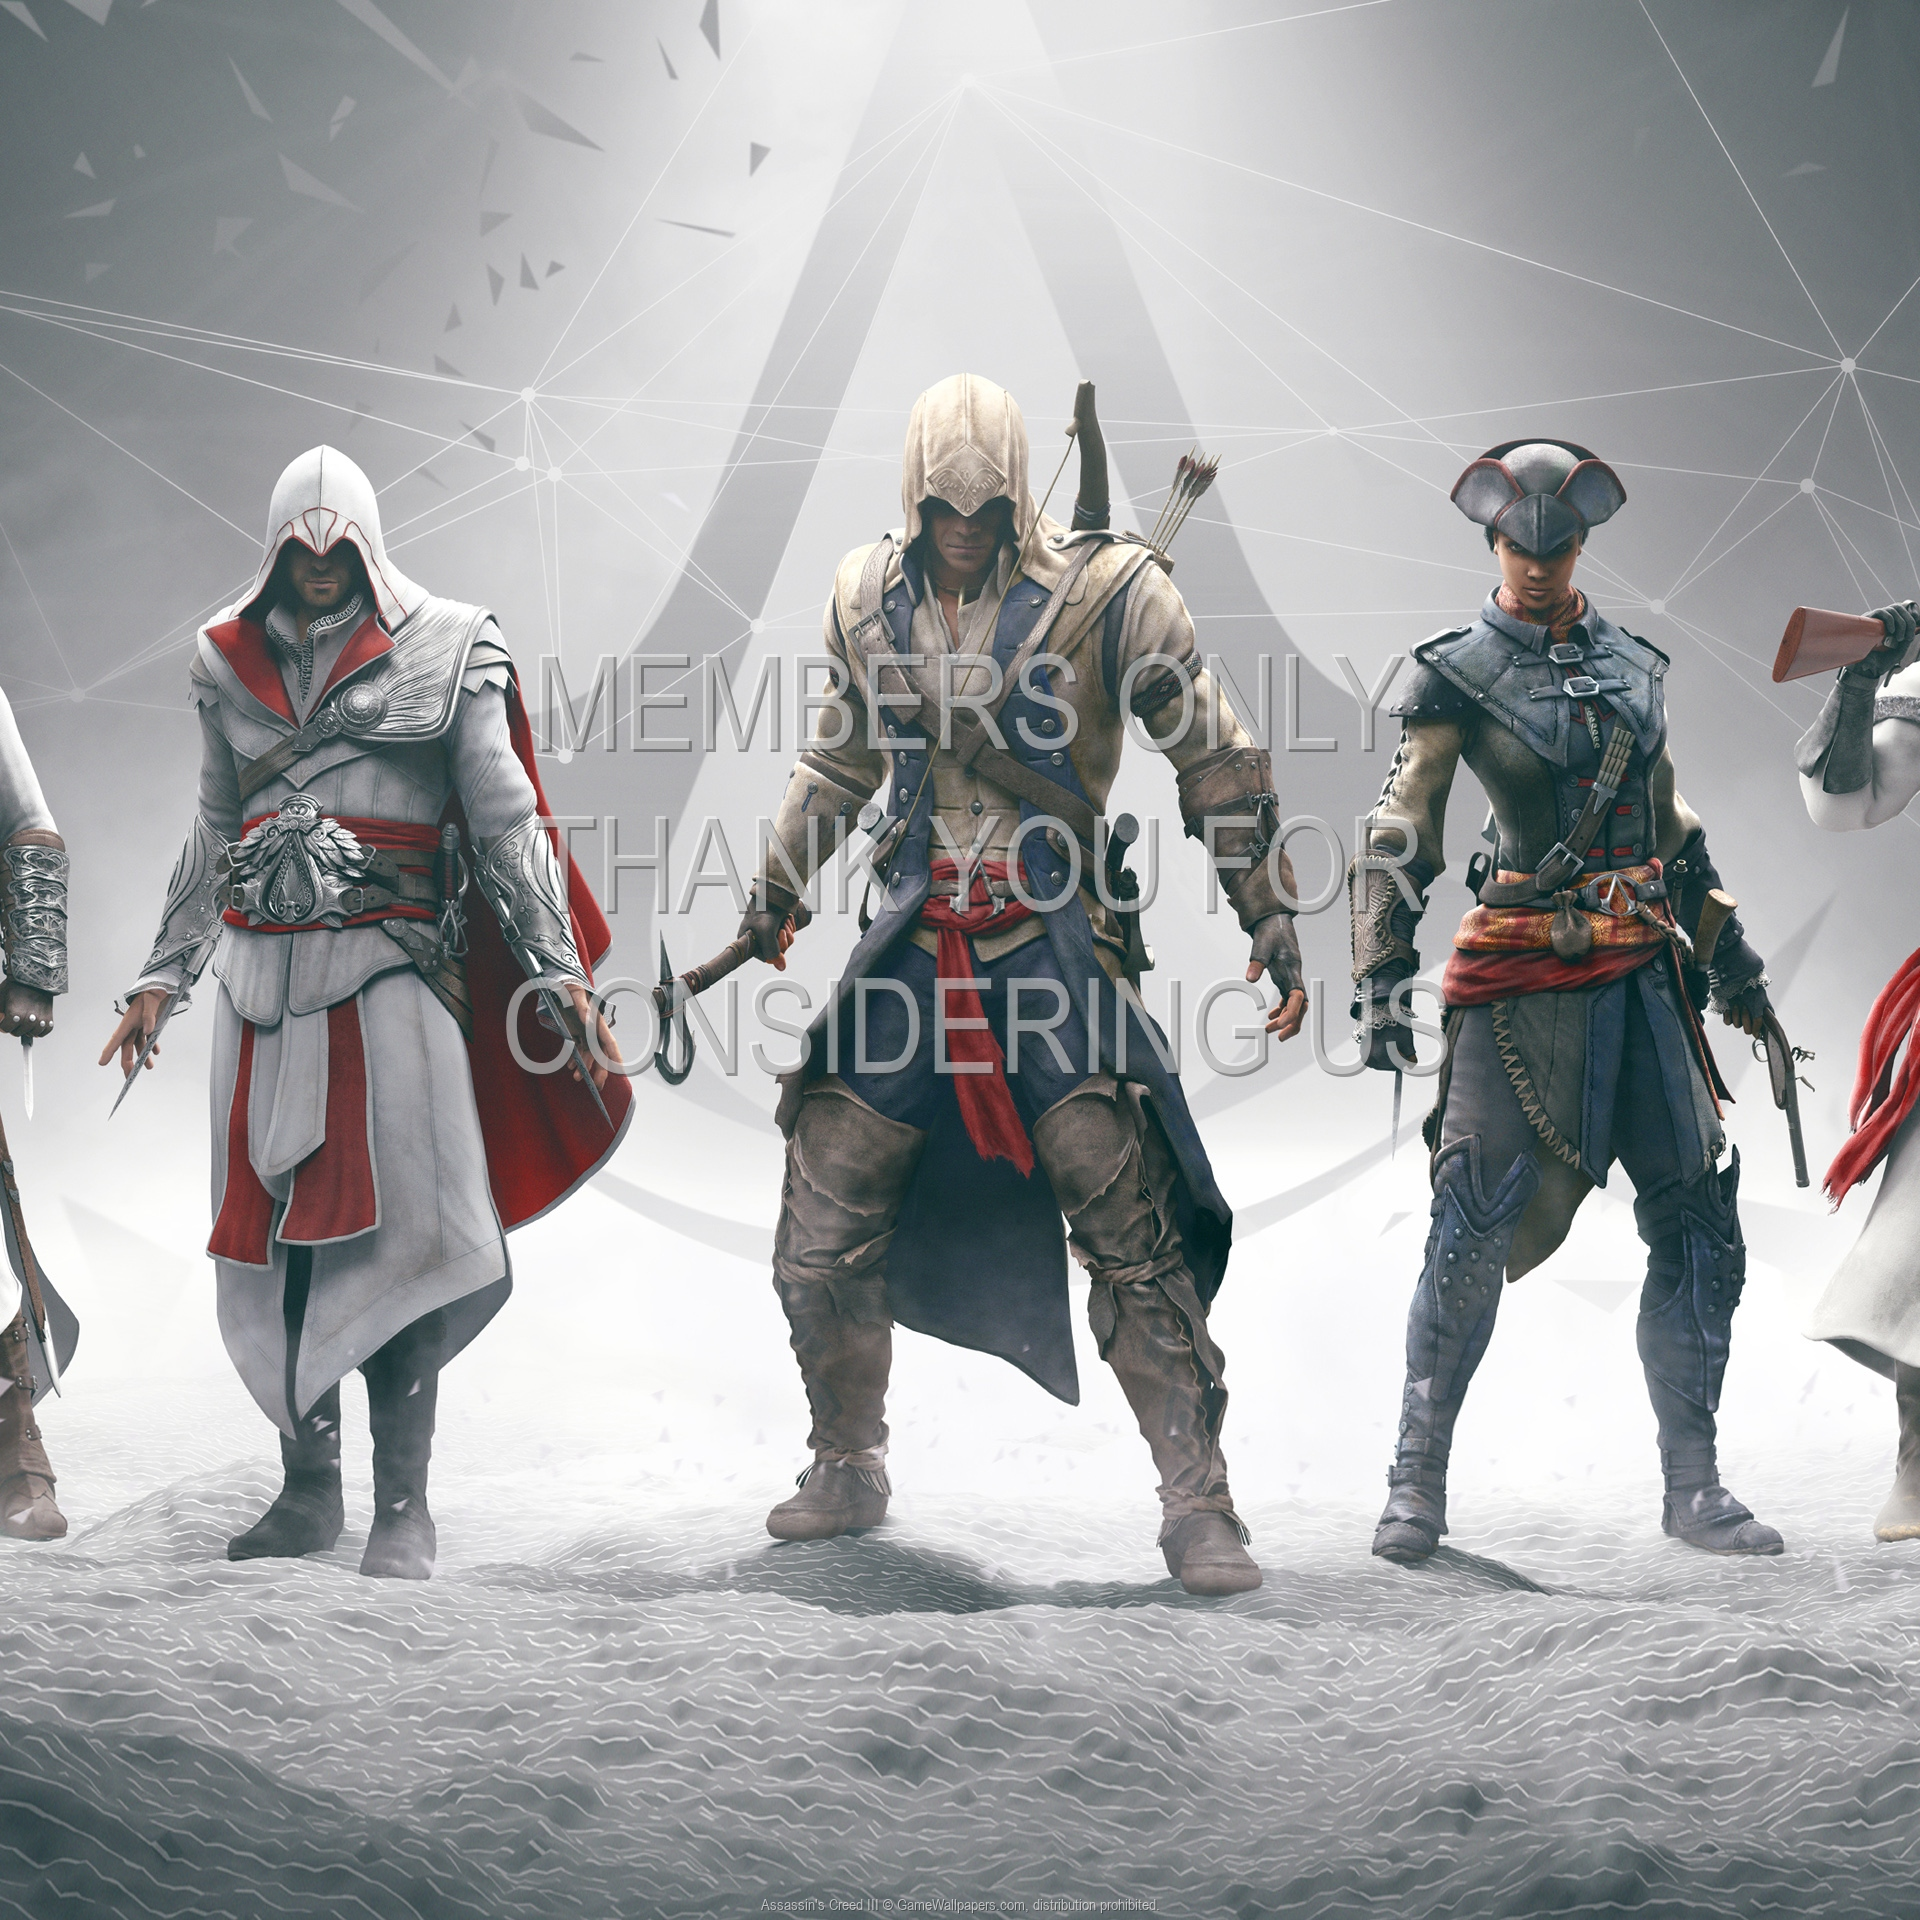 Assassin's Creed III 1920x1080 Mobile wallpaper or background 24